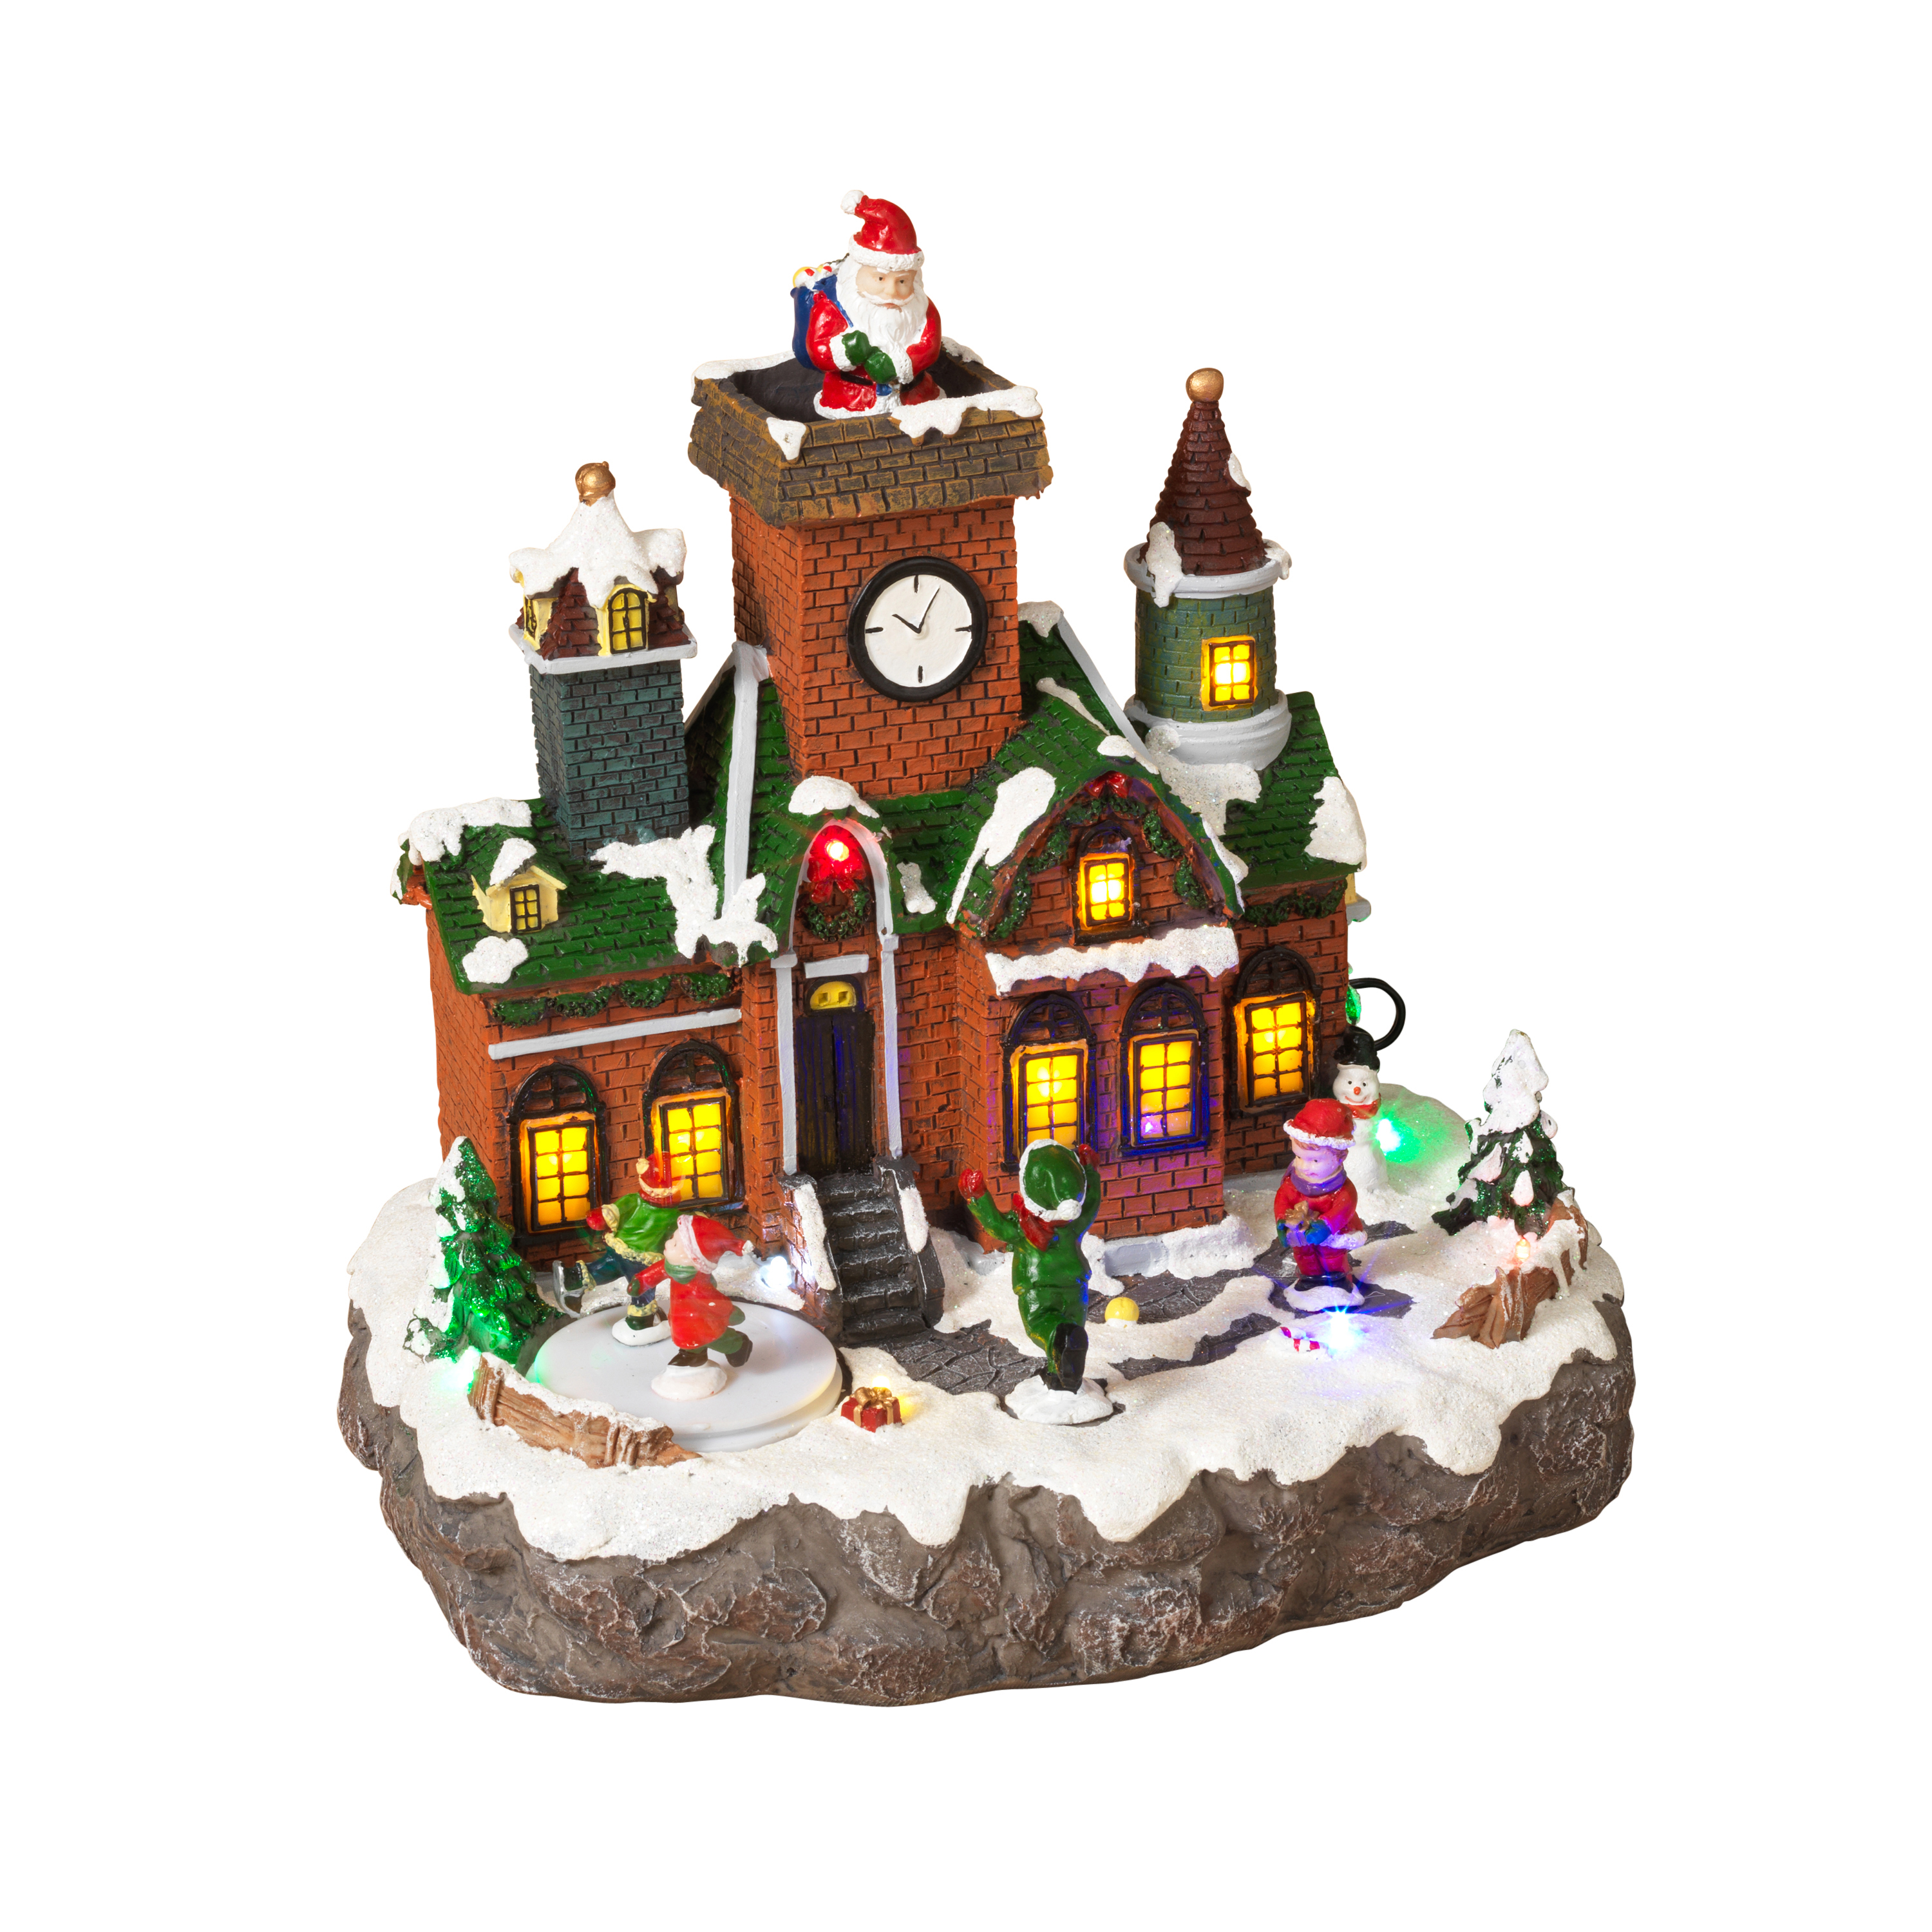 Brick Building Holiday Village Scene With Moving Figurines